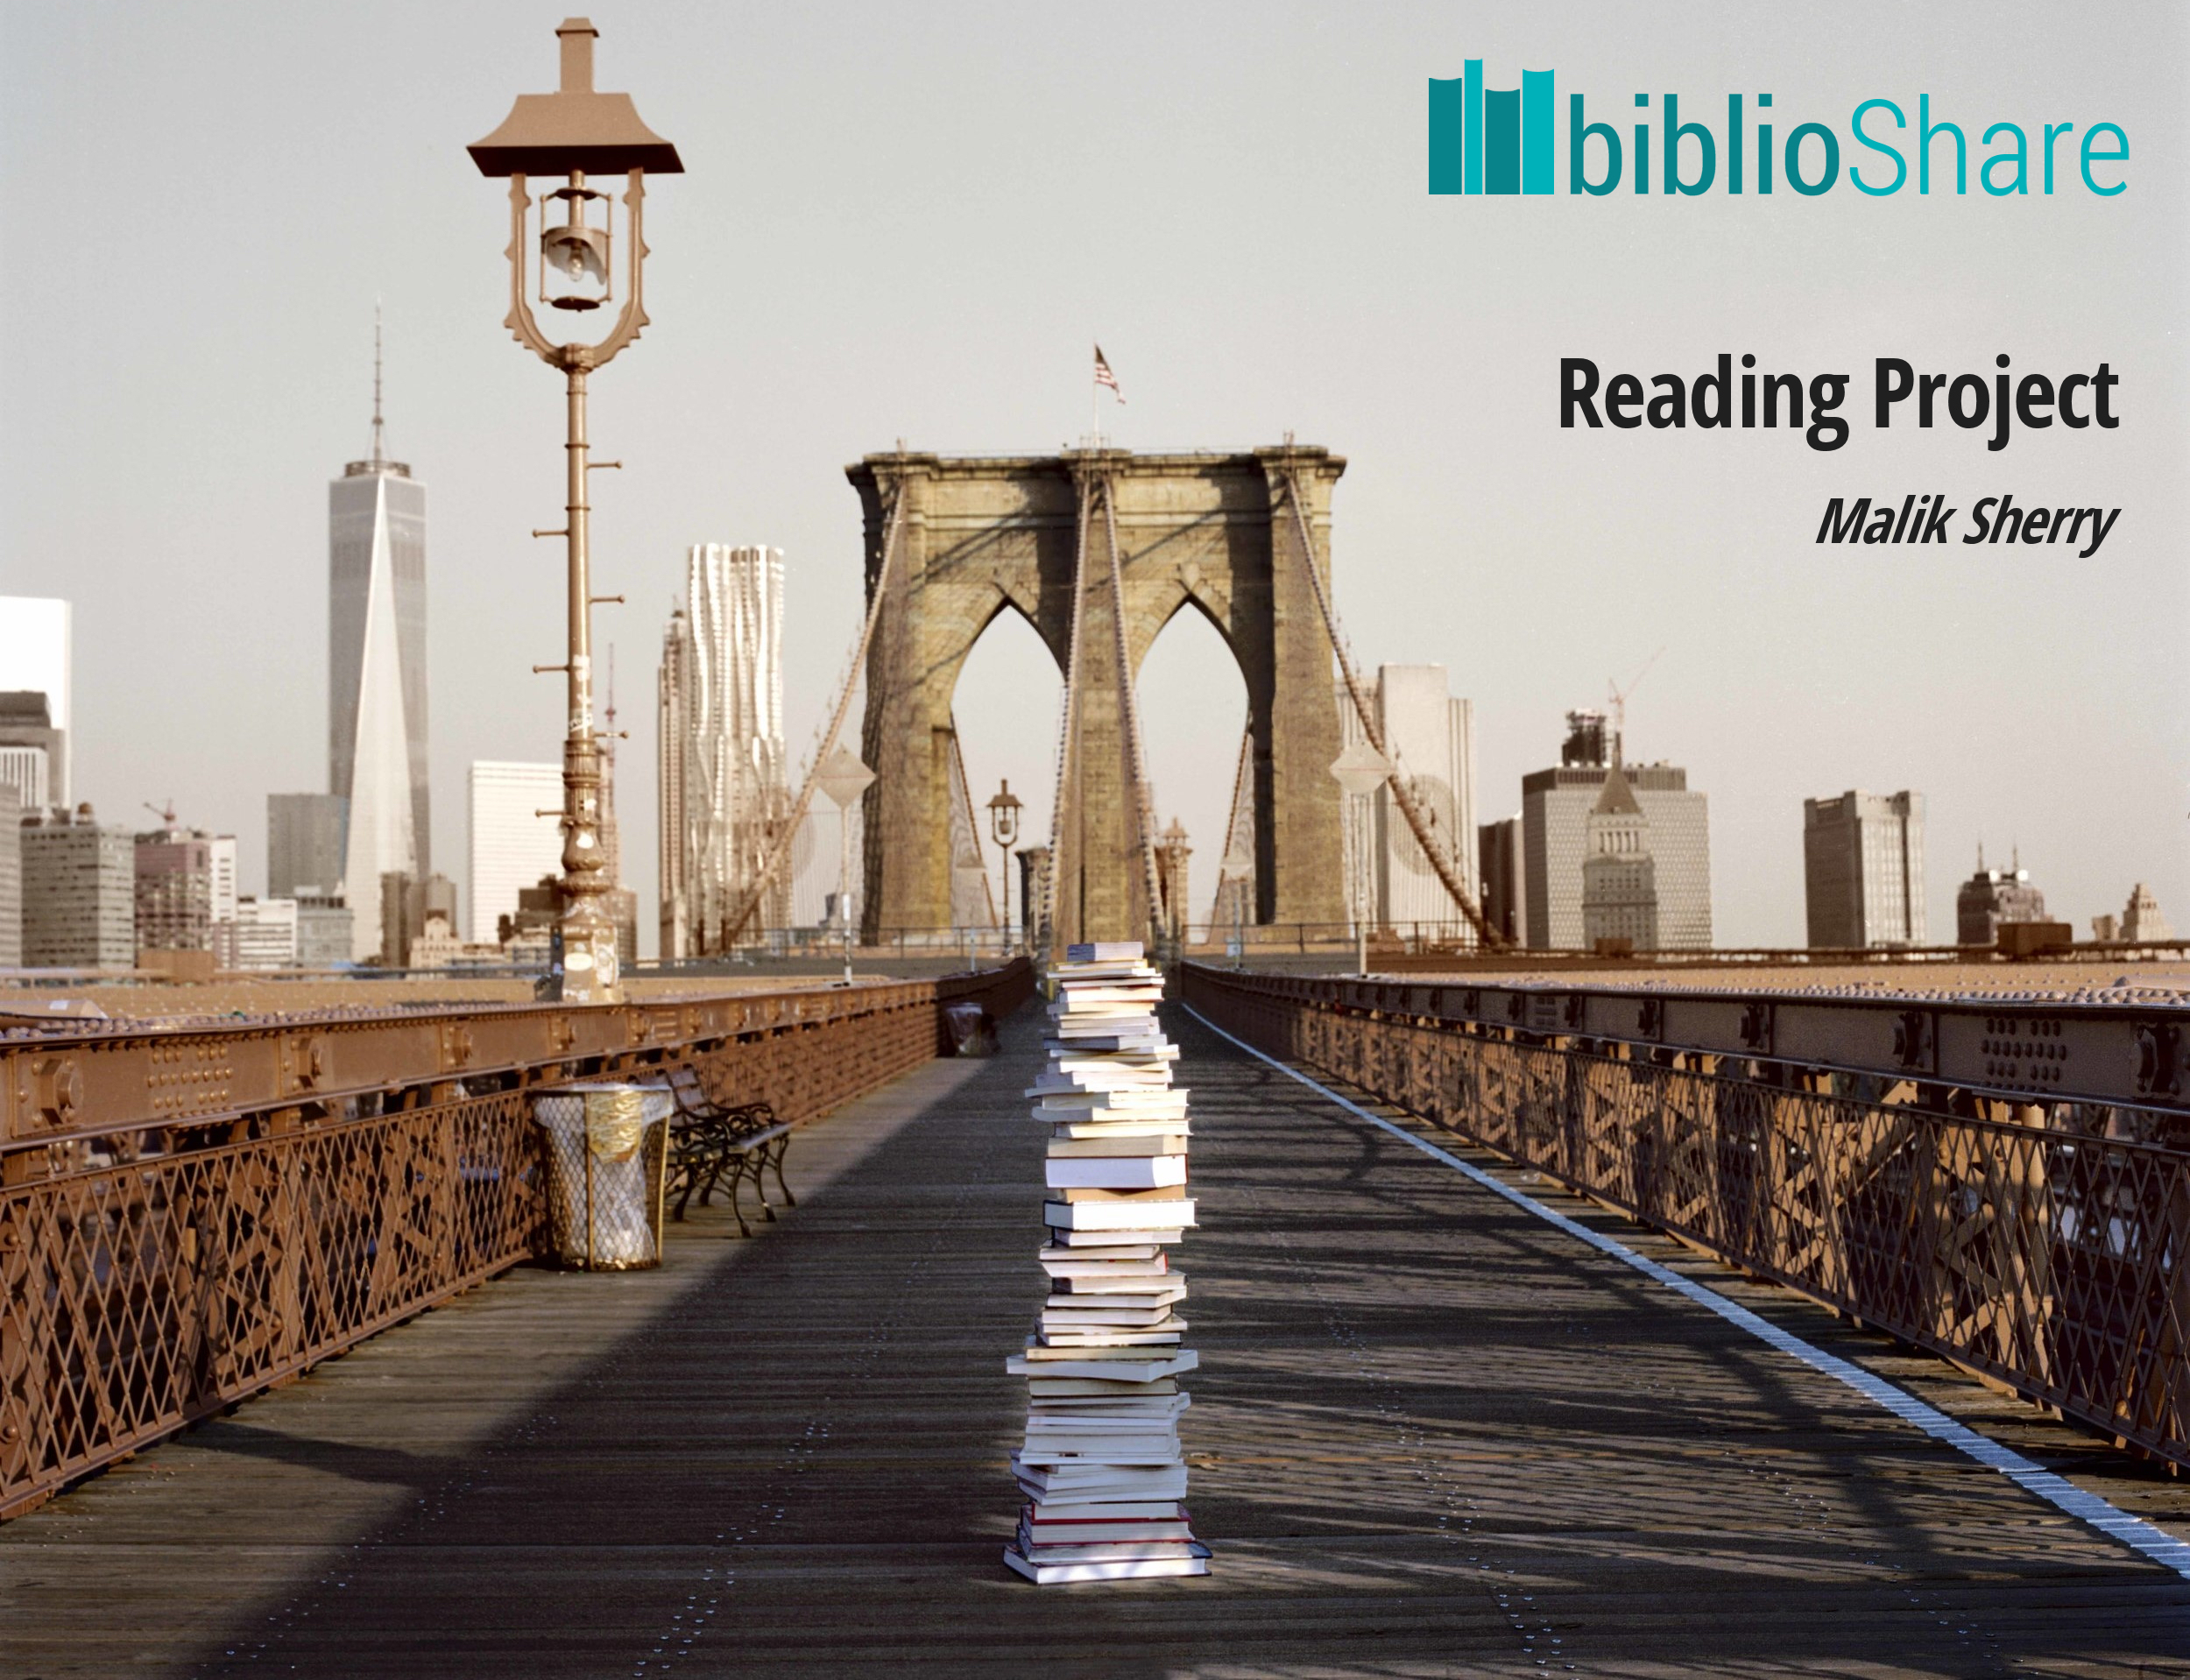 the Reading Project by Malik Sherry